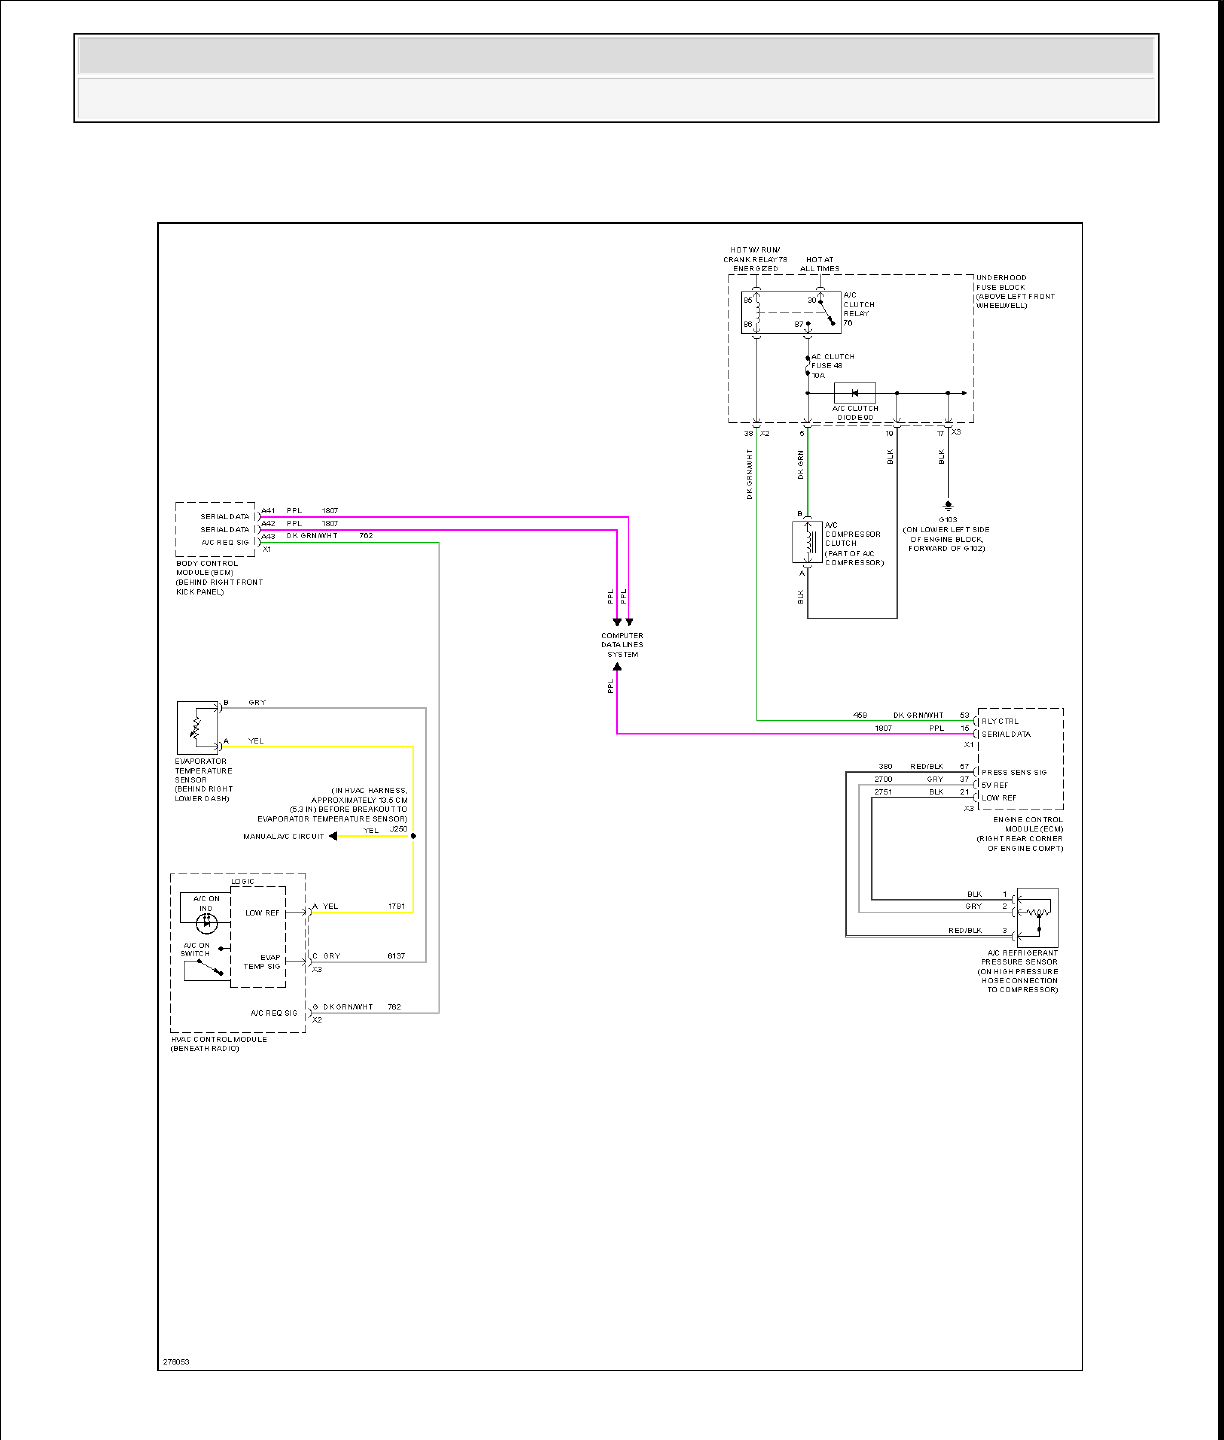 USING MITC1'S WIRING DIAGRAMS - ? 2008 SYSTEM WIRING ... on